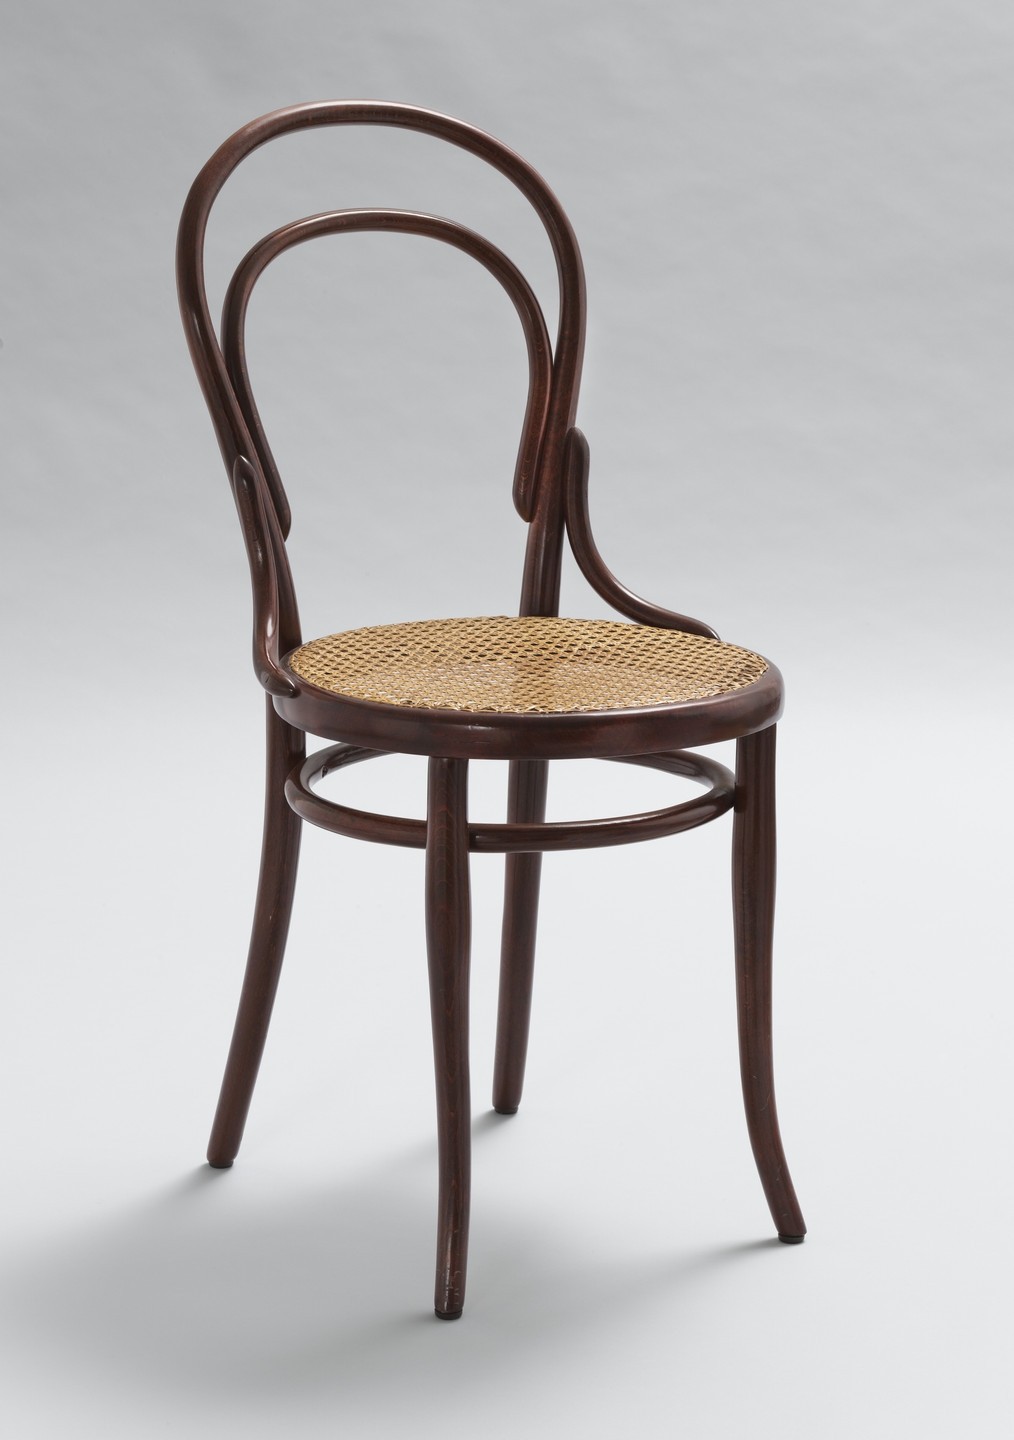 Michael Thonet. Chair No. 14. 1881